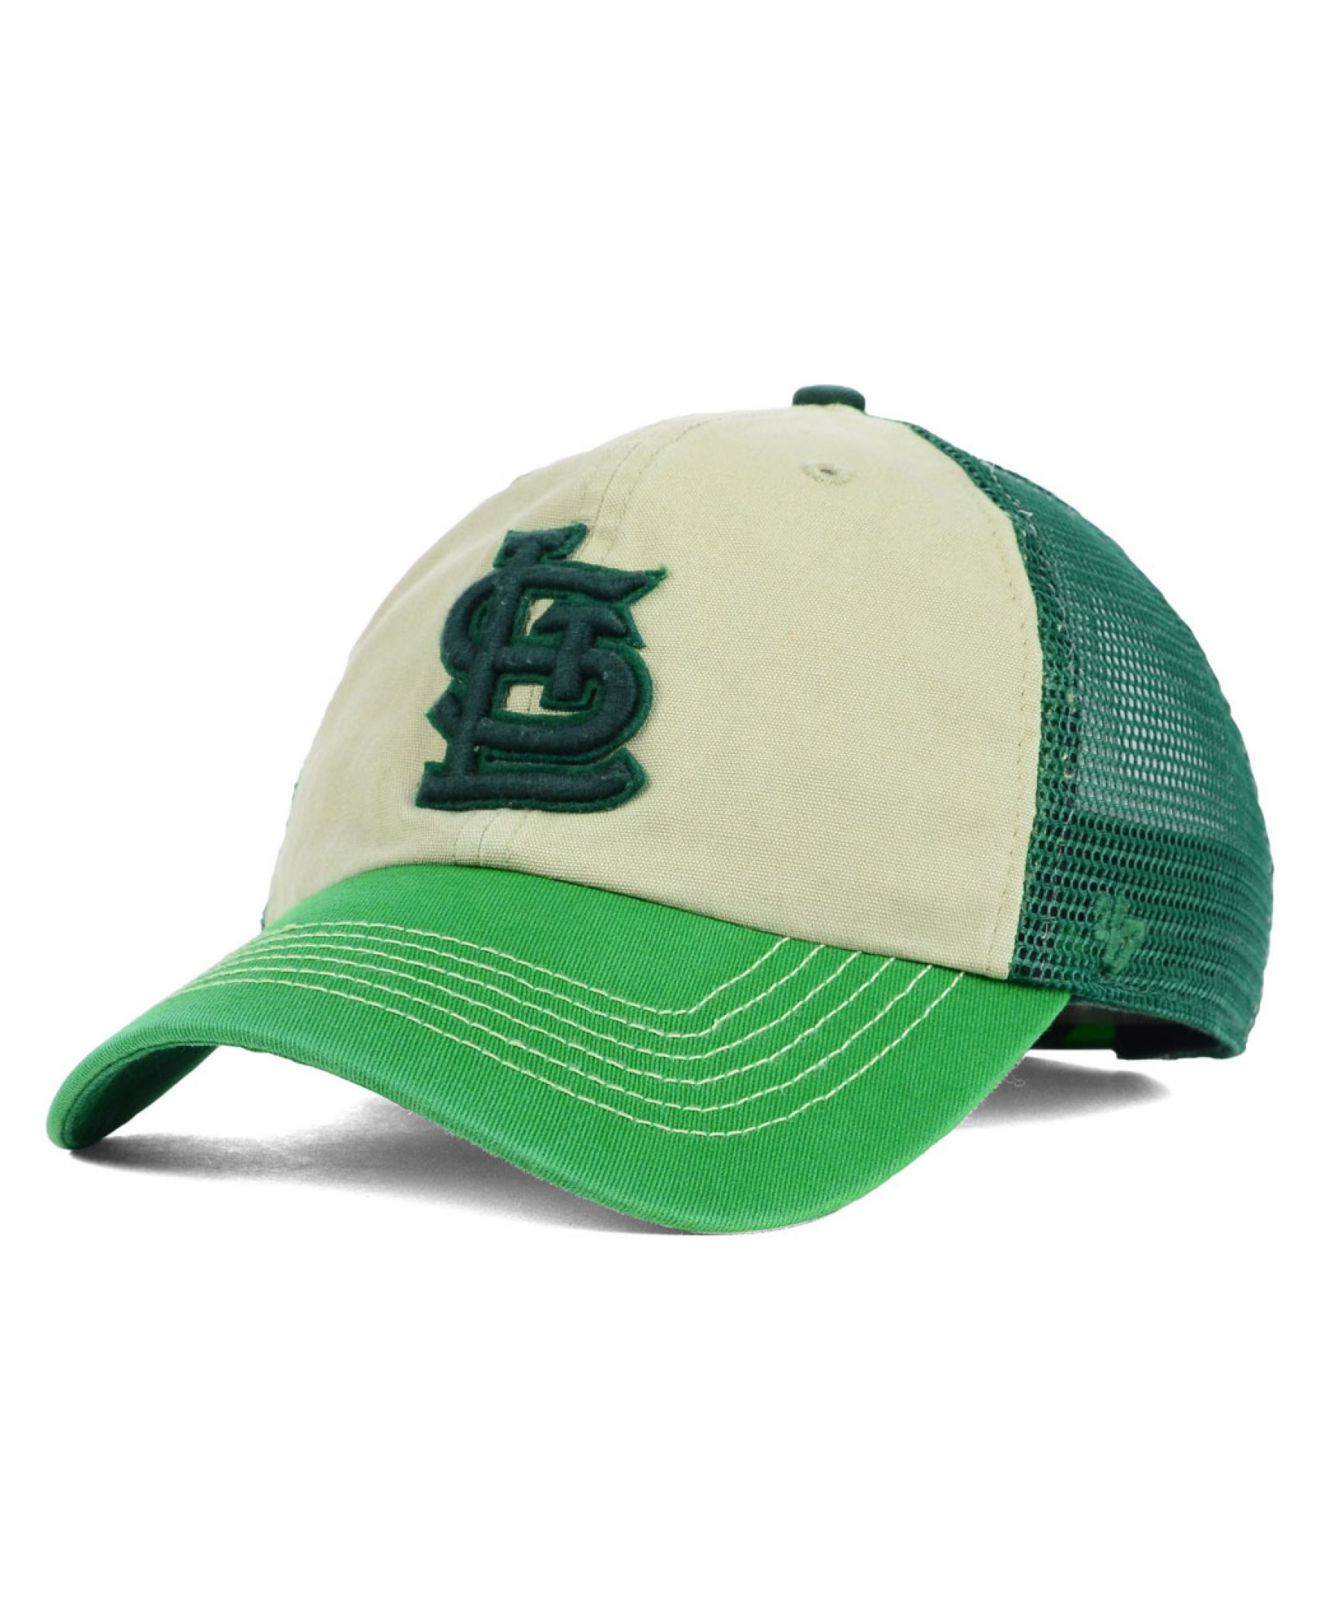 best website 018c6 3e895 ... cheapest lyst 47 brand st. louis cardinals mcnally clean up cap in  green 079f8 15acc